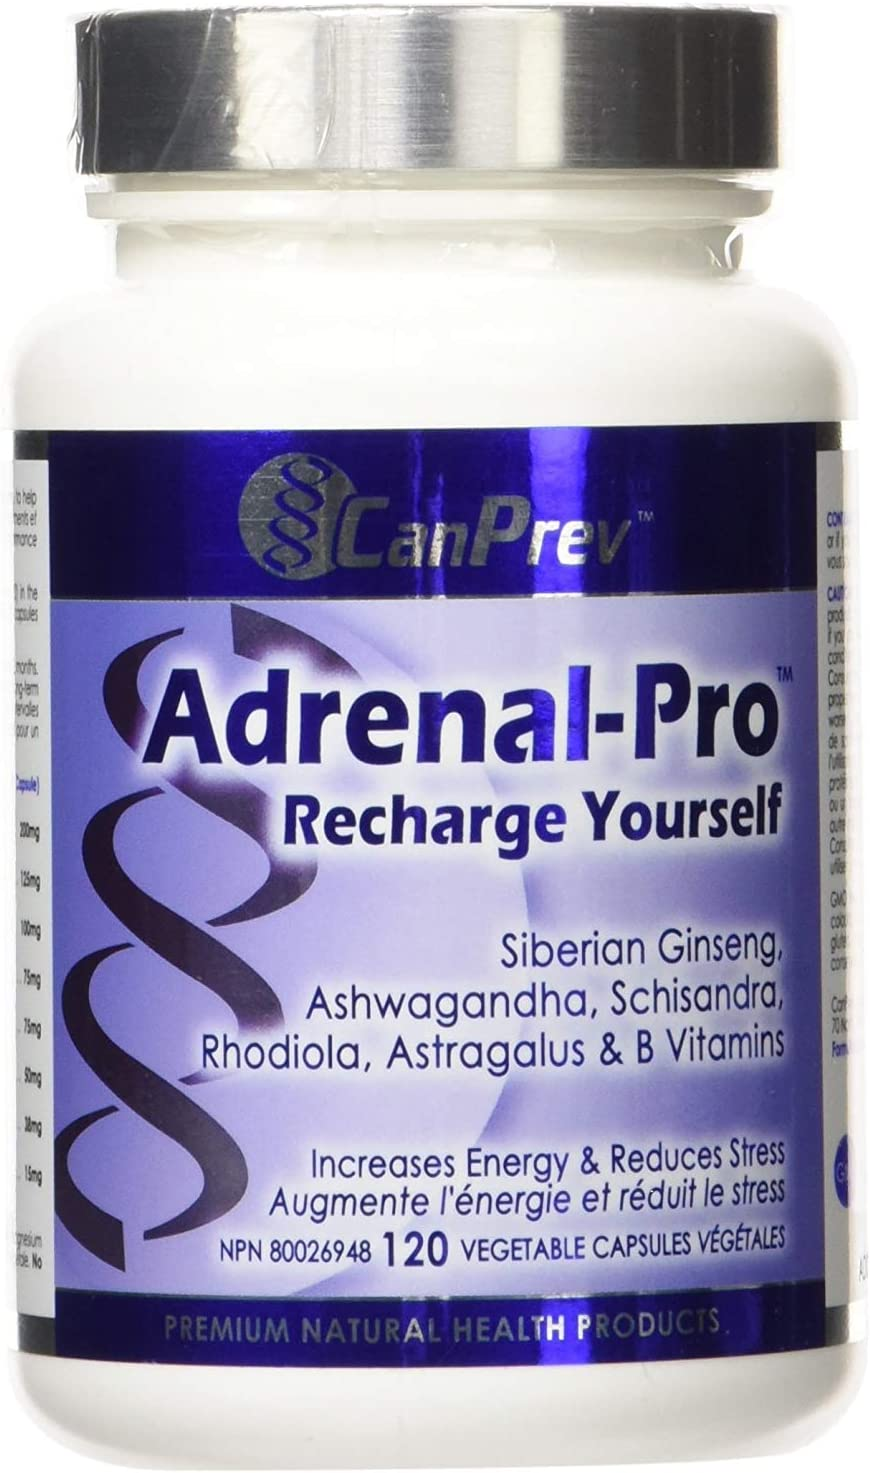 CanPrev Adrenal-Pro Recharge Yourself Vegi Capsules, 120 Count